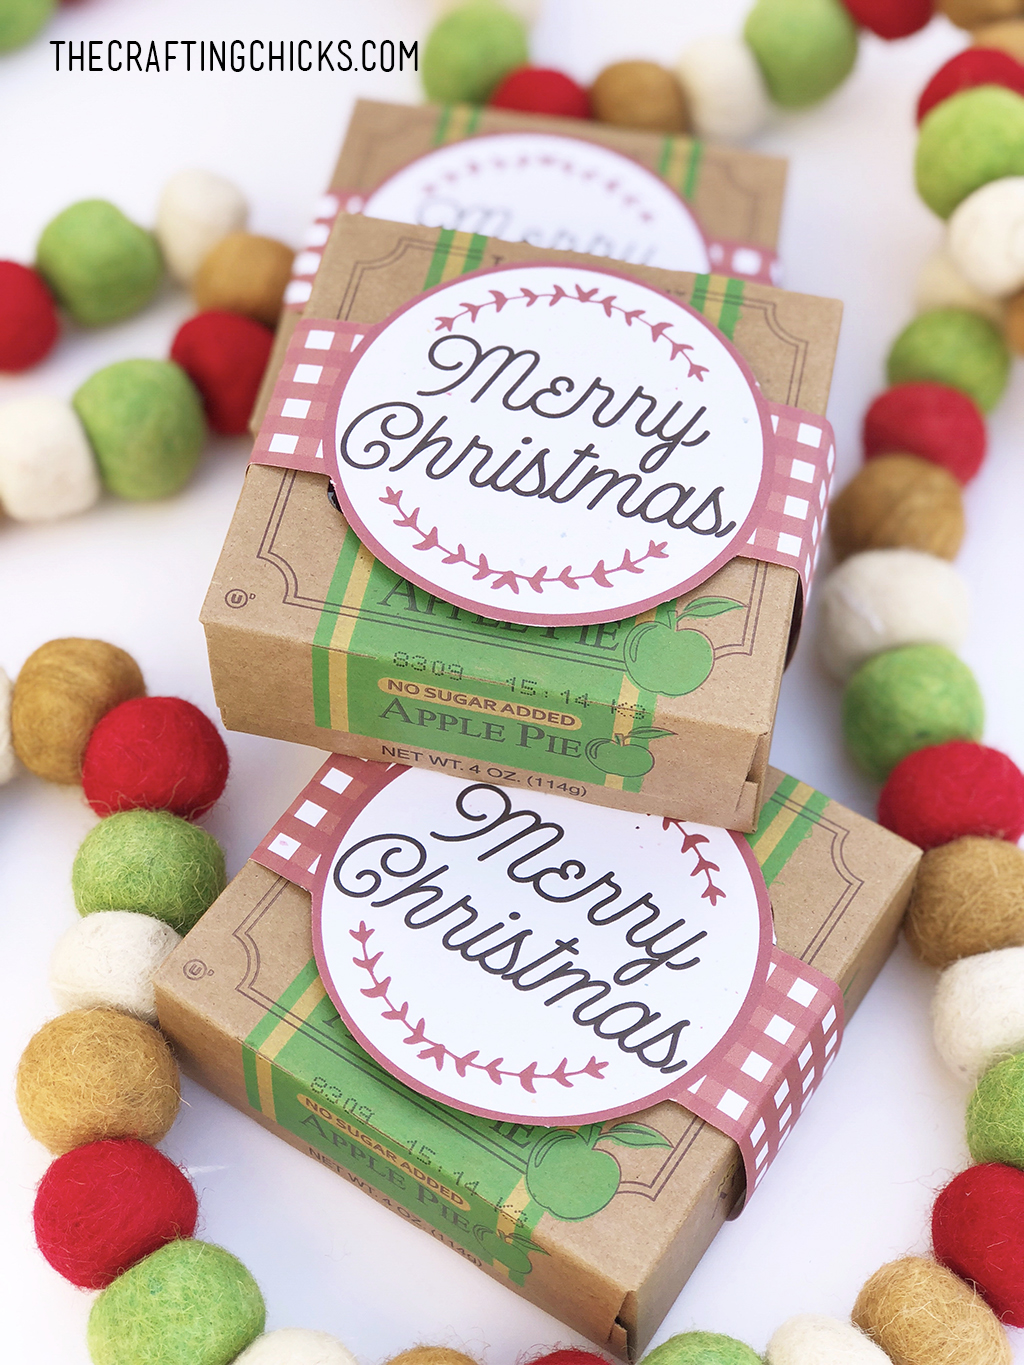 Christmas Pies.Christmas Mini Pies With Tags The Crafting Chicks